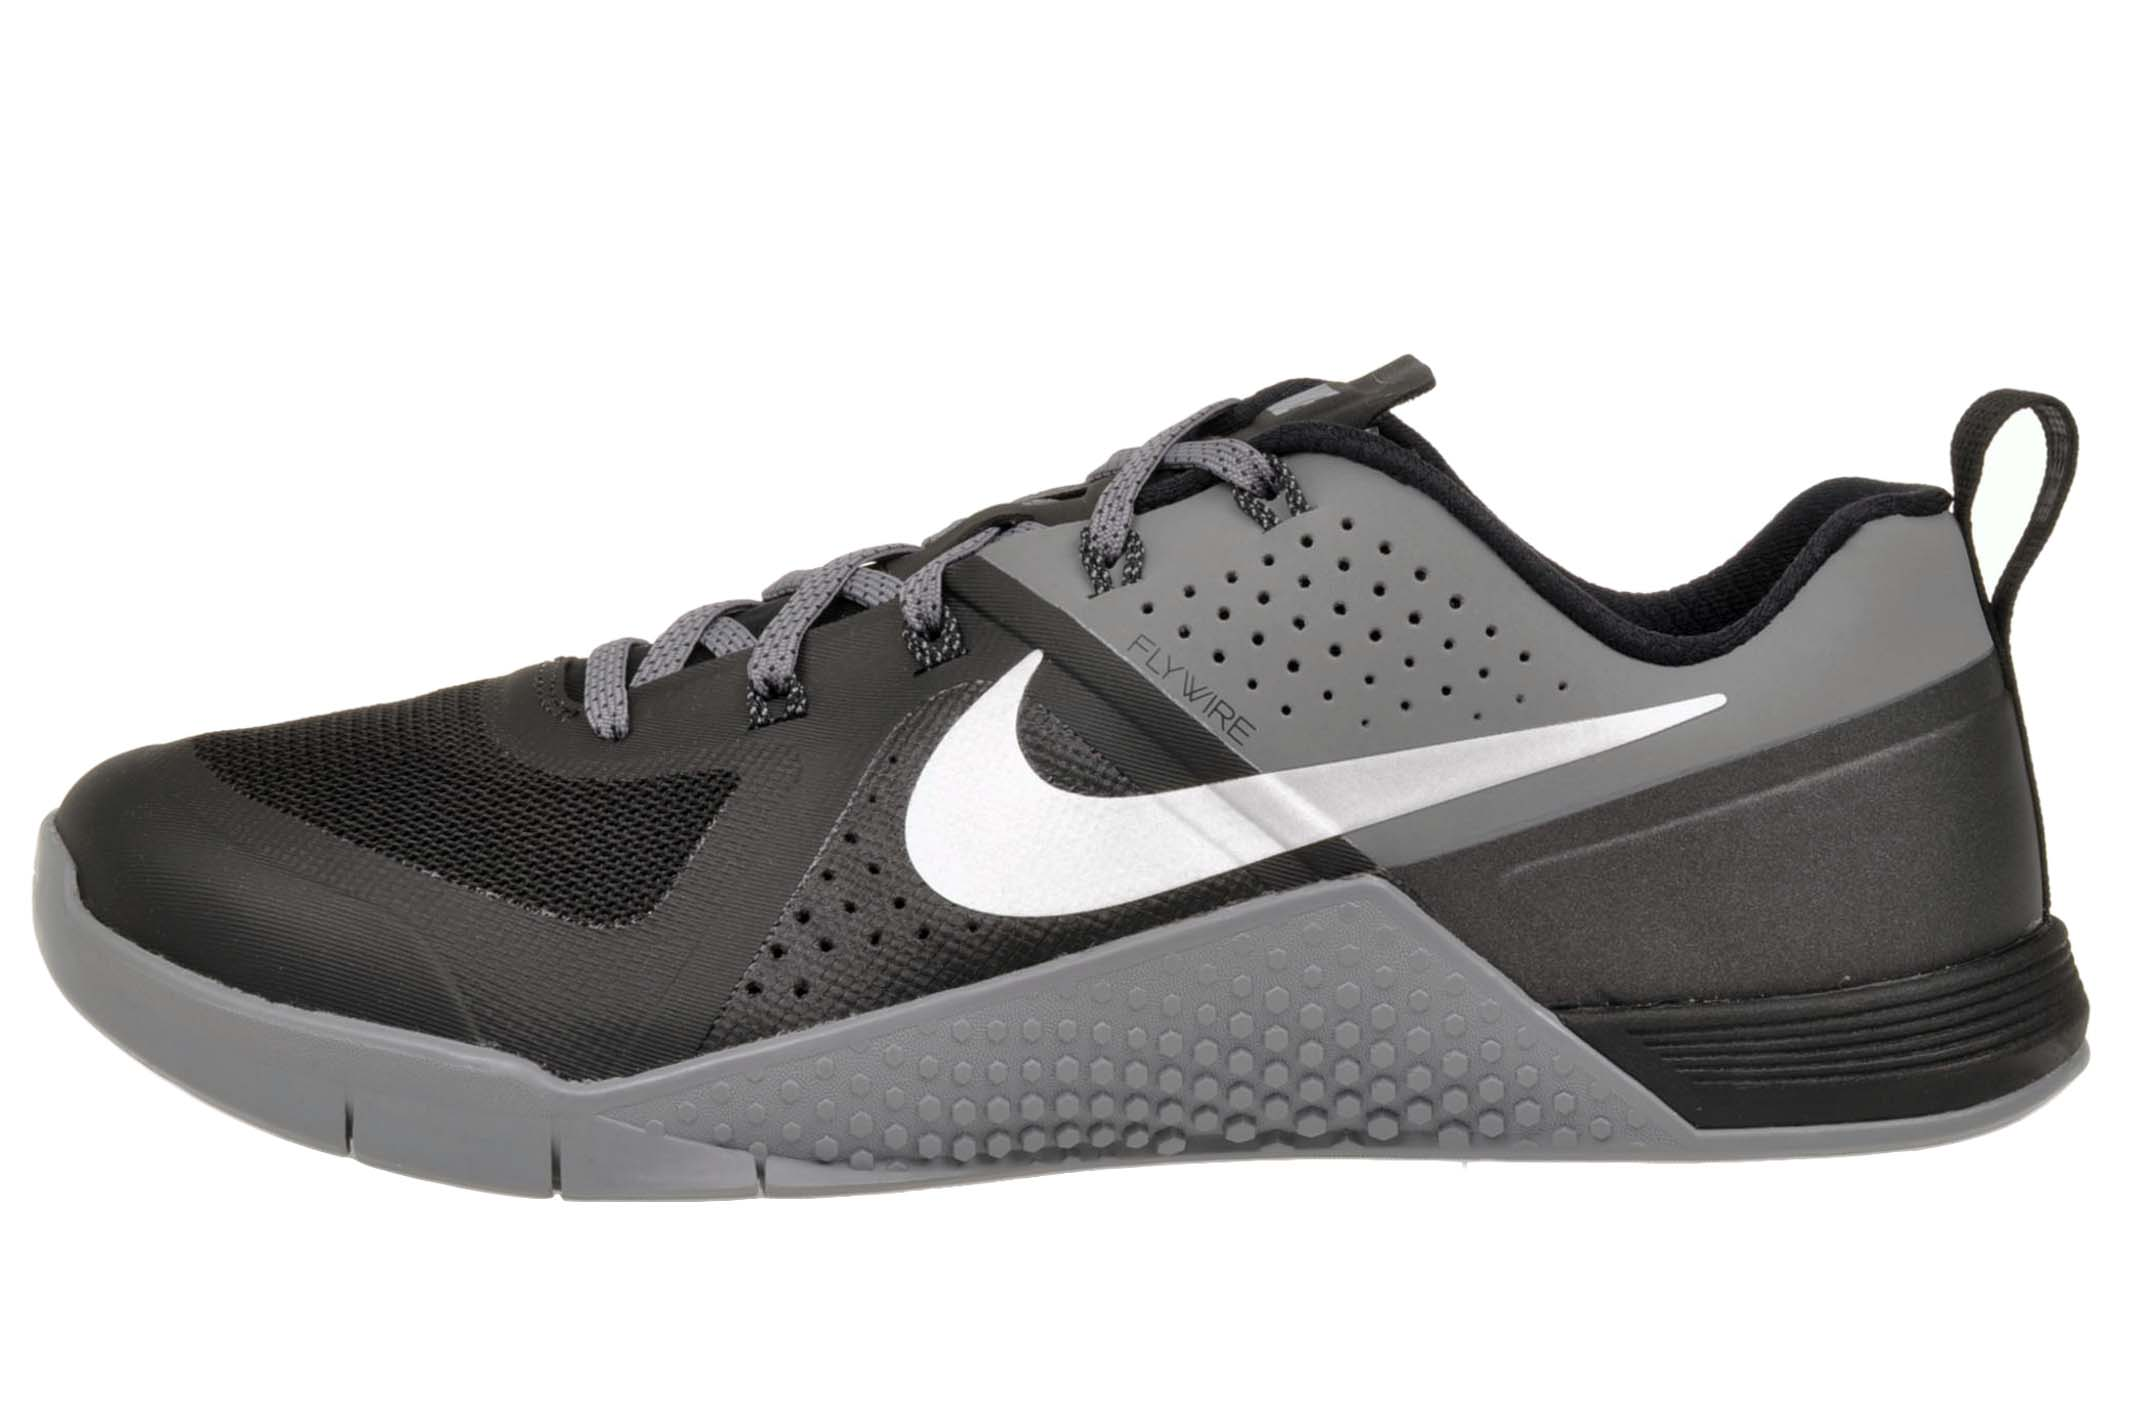 ... Nike Metcon 1 Crossfit Mens Training Shoes Trainers Sneakers Black  704688-002 ... 0b86eefc7